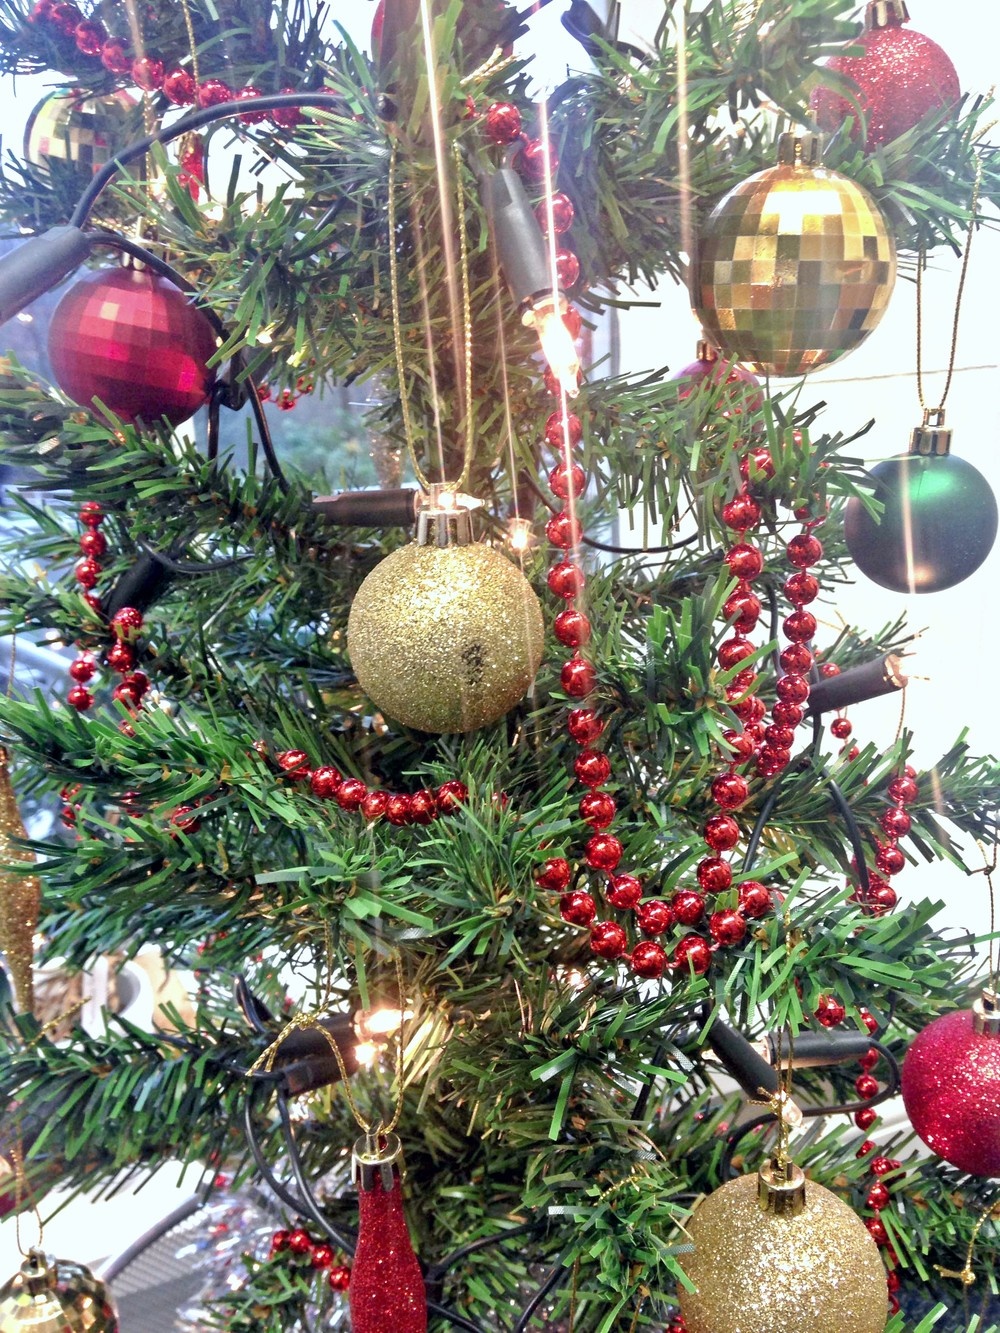 Our Christmas tree at work